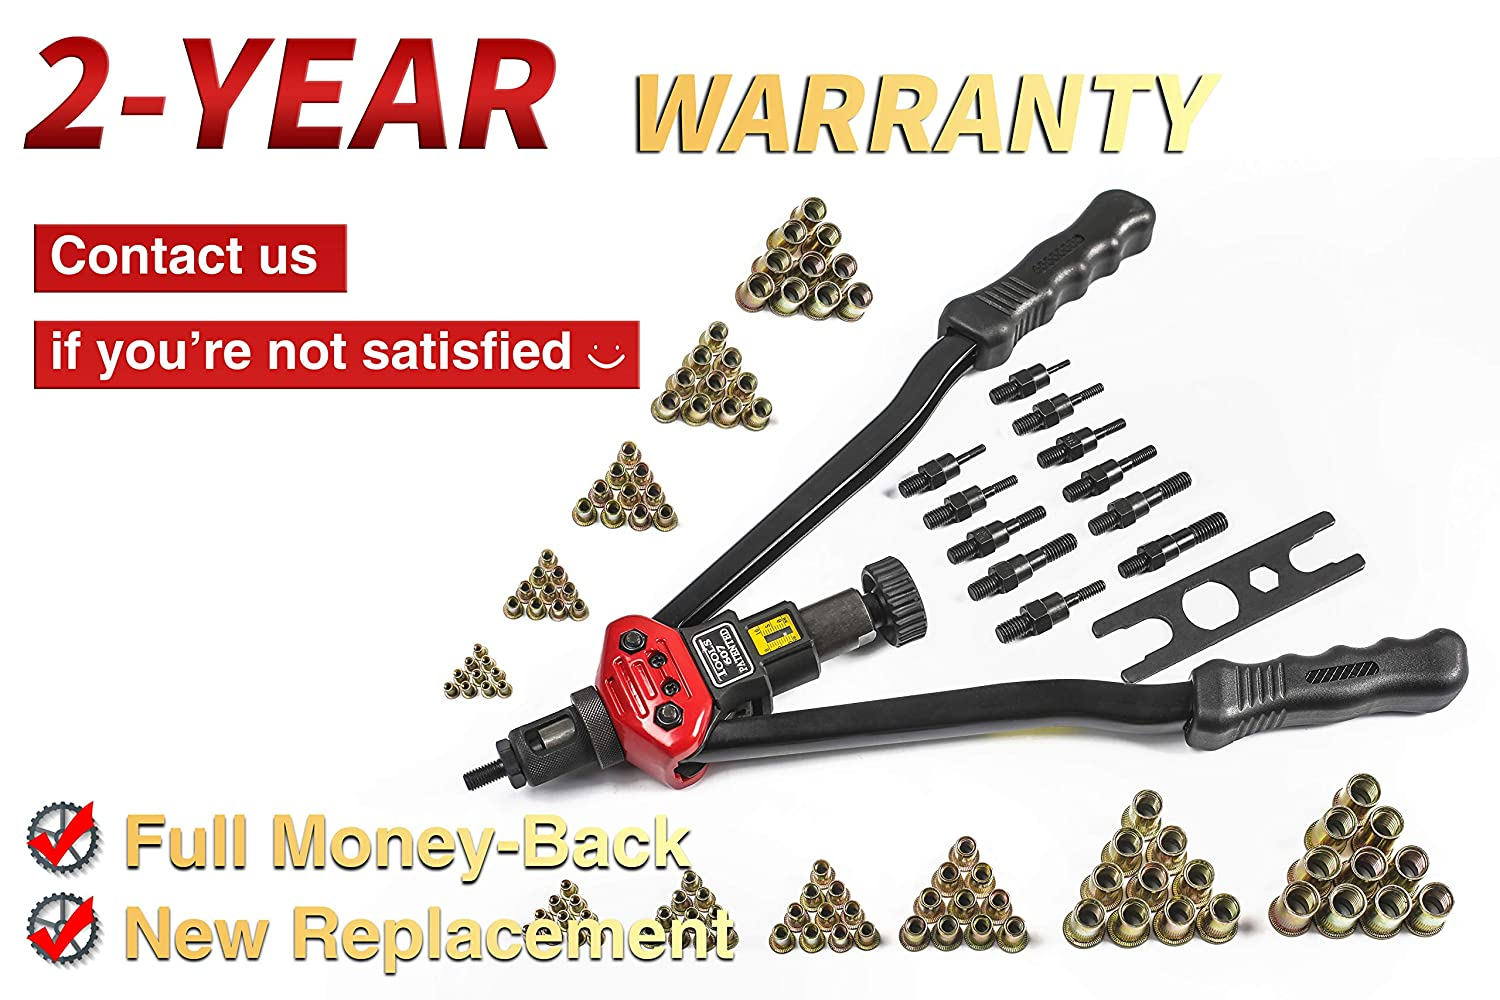 RZX 17 Rivet NUT Tool Hand Blind Riveter,RIVNUT Riveting Tools with Nut Setting System M3 M4 M5,m6,m8,m10 M12 1//4-20 5//16-18,3//8-16,Totally 11 mandrels+110PCS Rivets Nuts 10-24 17 Rivet Gun